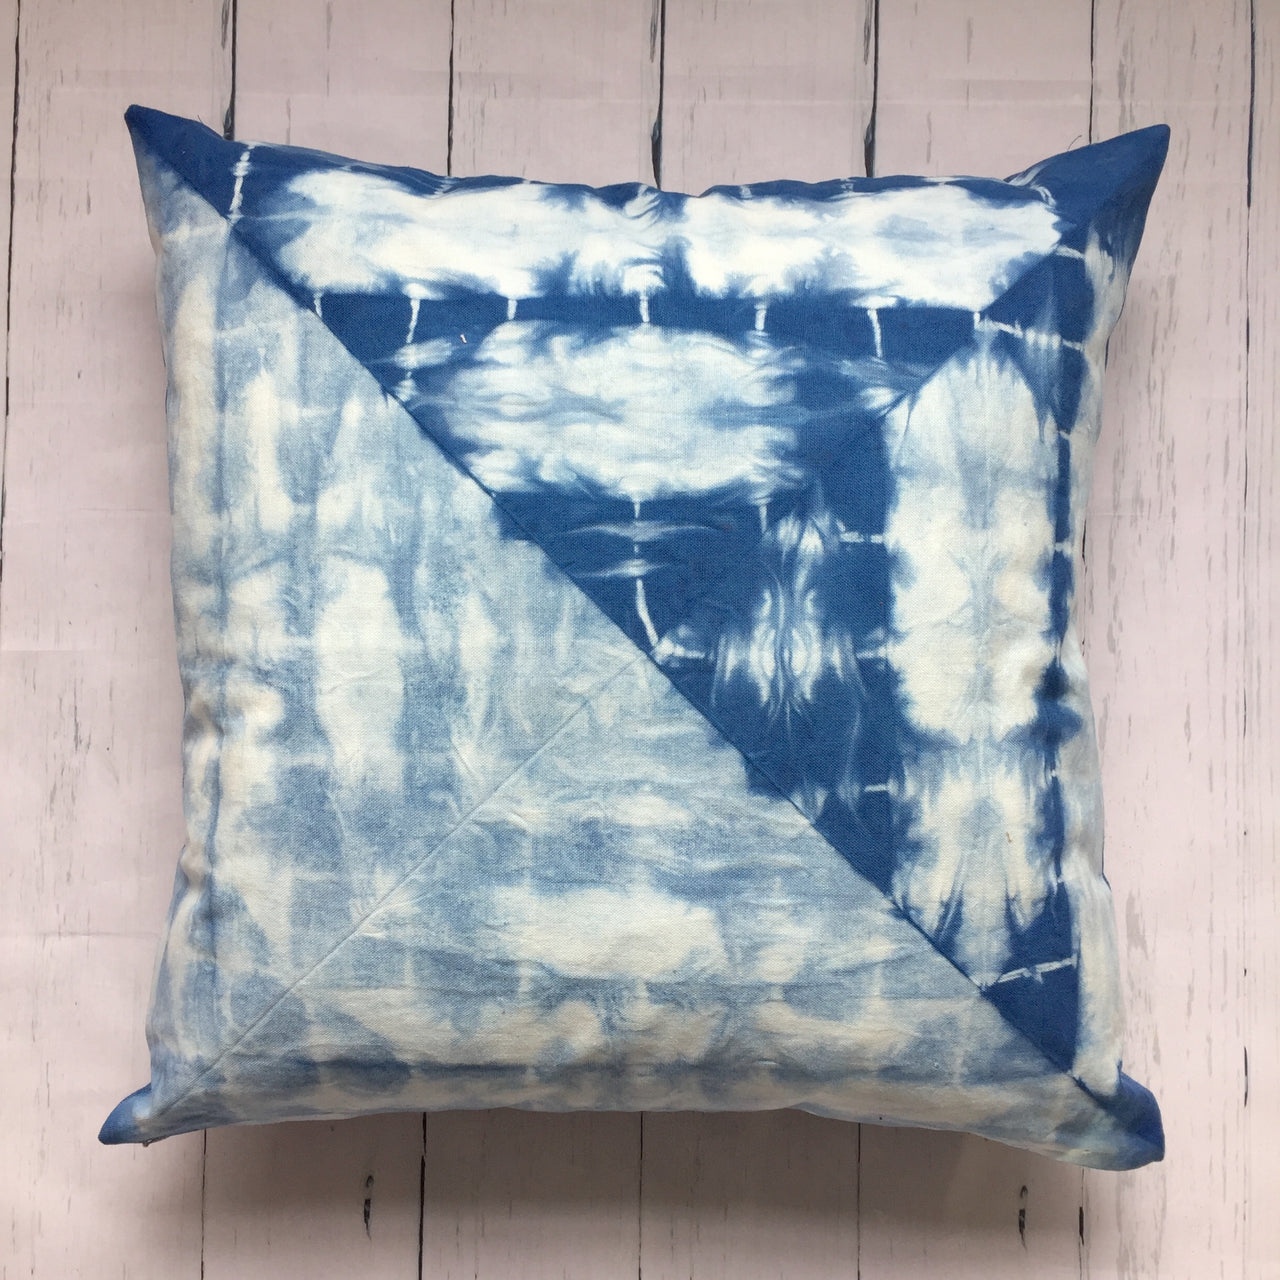 eco-friendly-sustainable-repurposed-handmade-home-decor-indigo-dyed-24-inch-floor-pillow